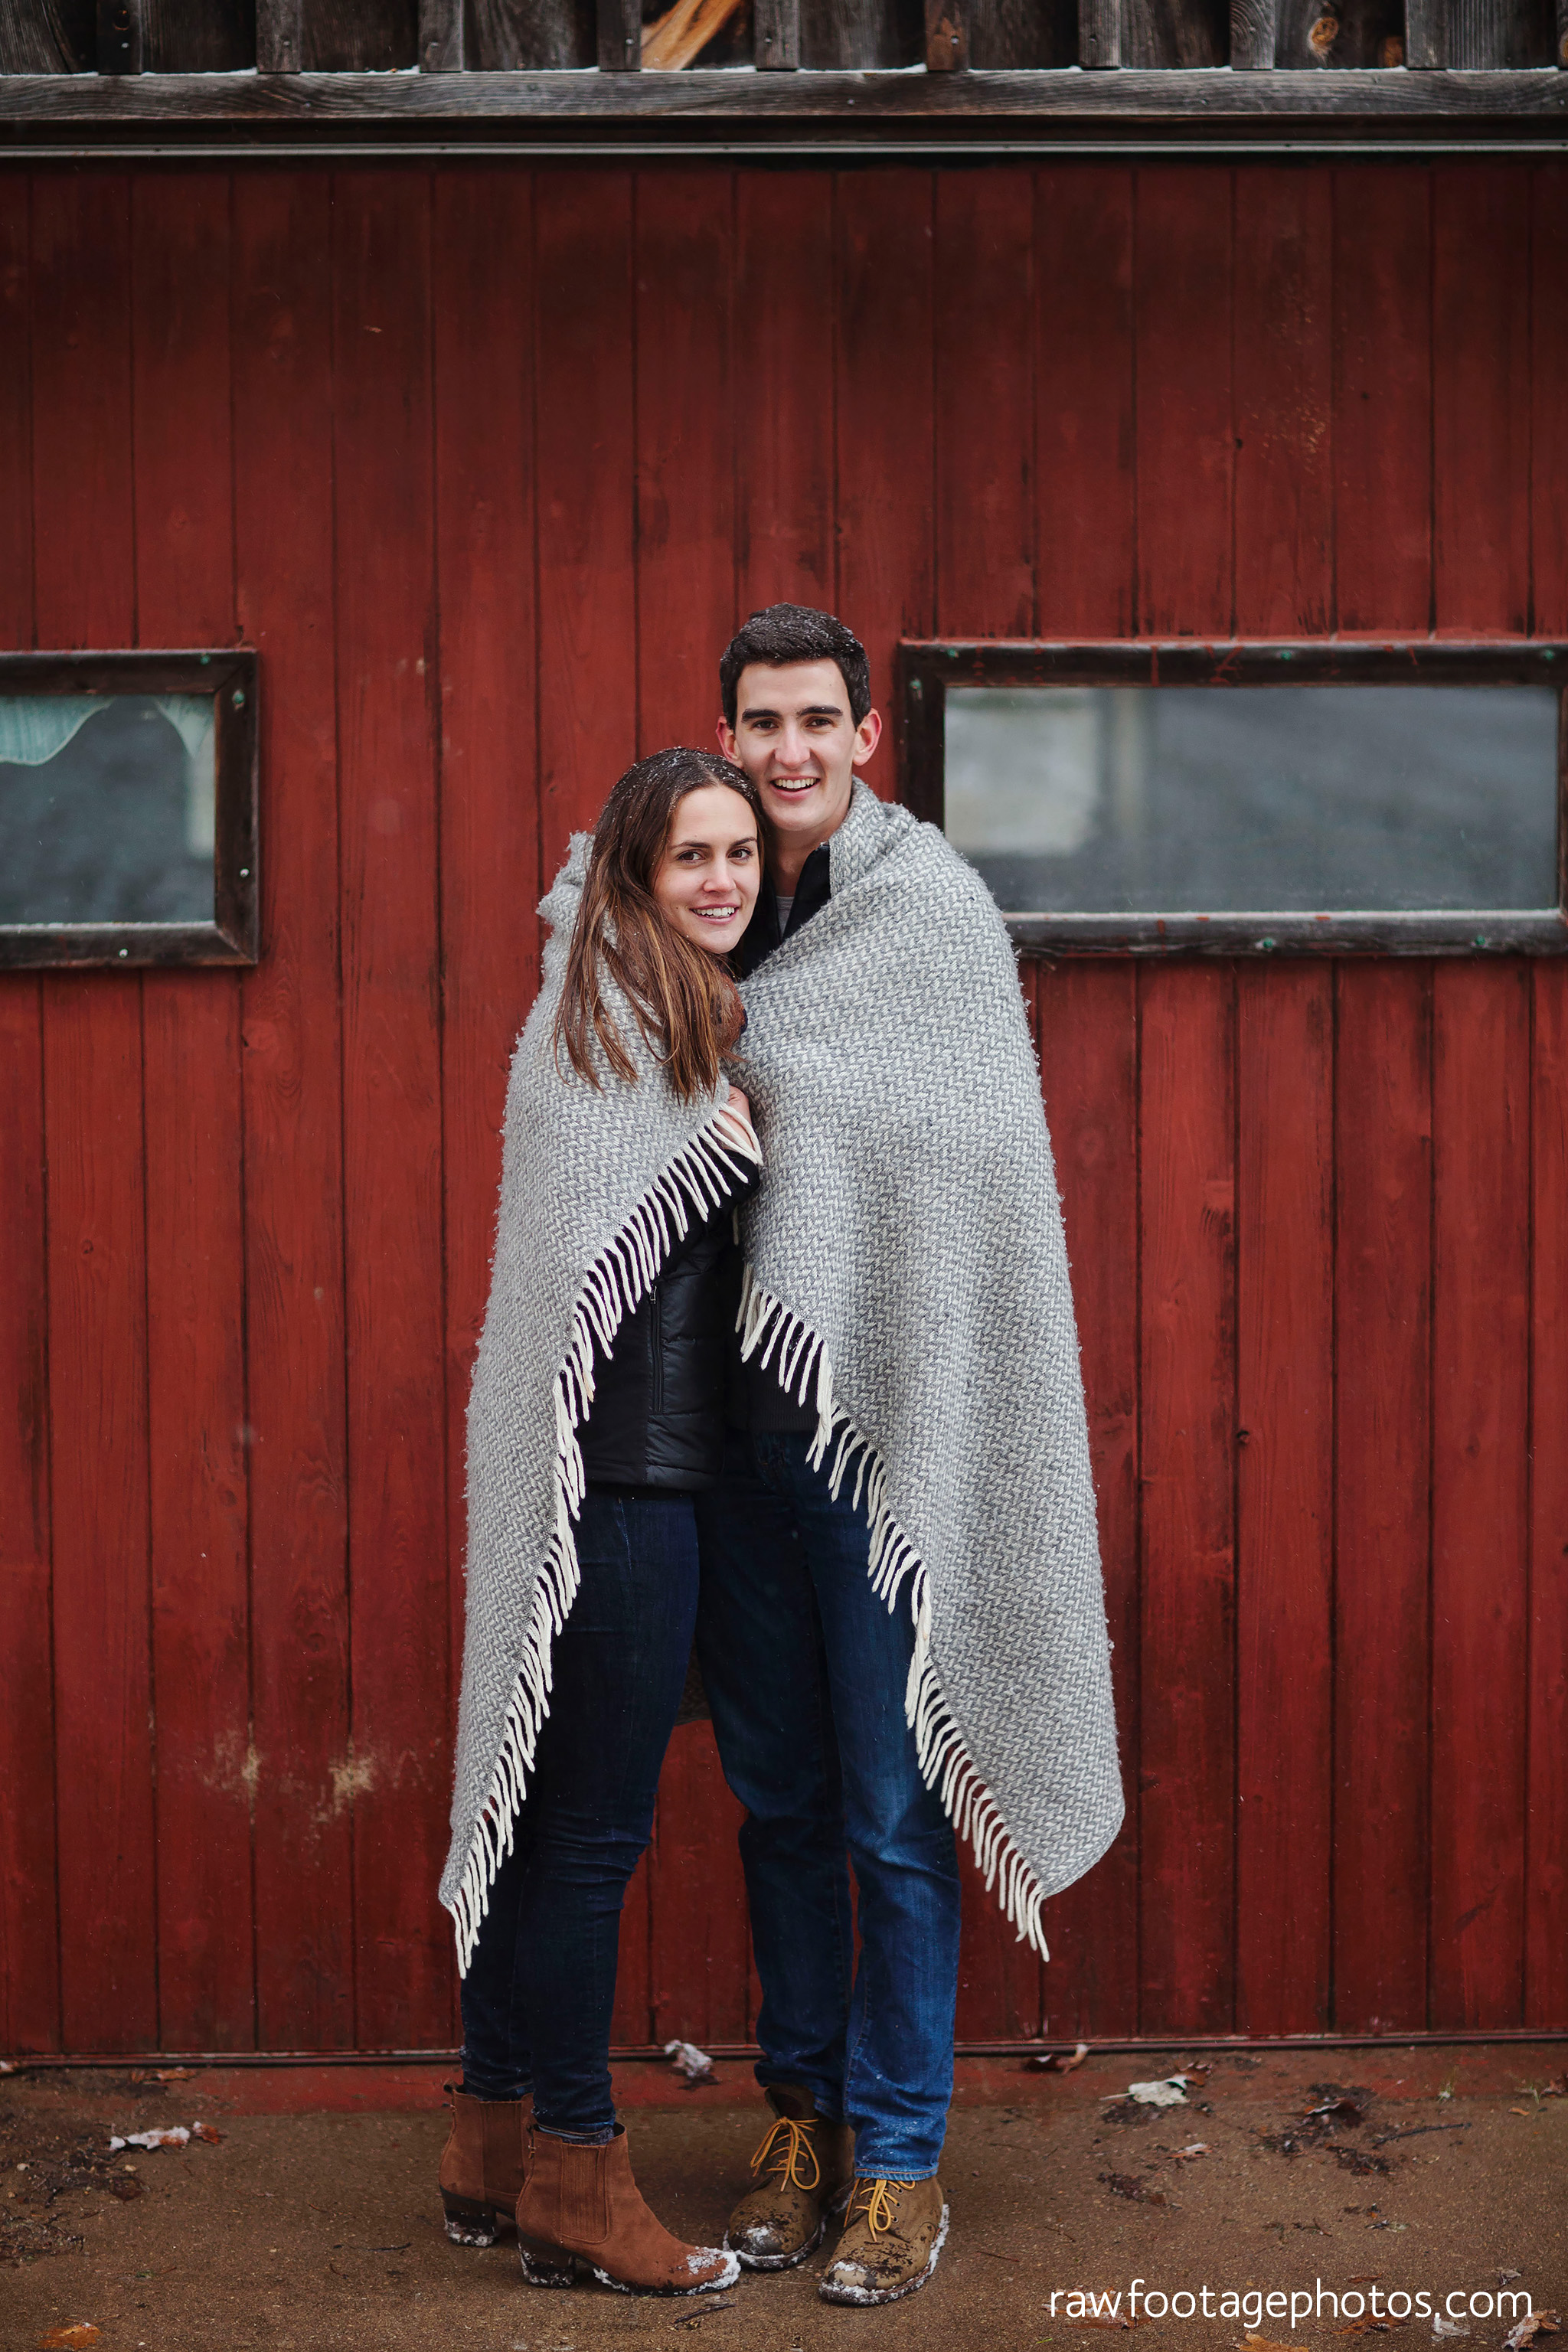 london_ontario_wedding_photographer-snowy_engagement_session-winter-barn-farm-snowflakes-blizzard-raw_footage_photography025.jpg